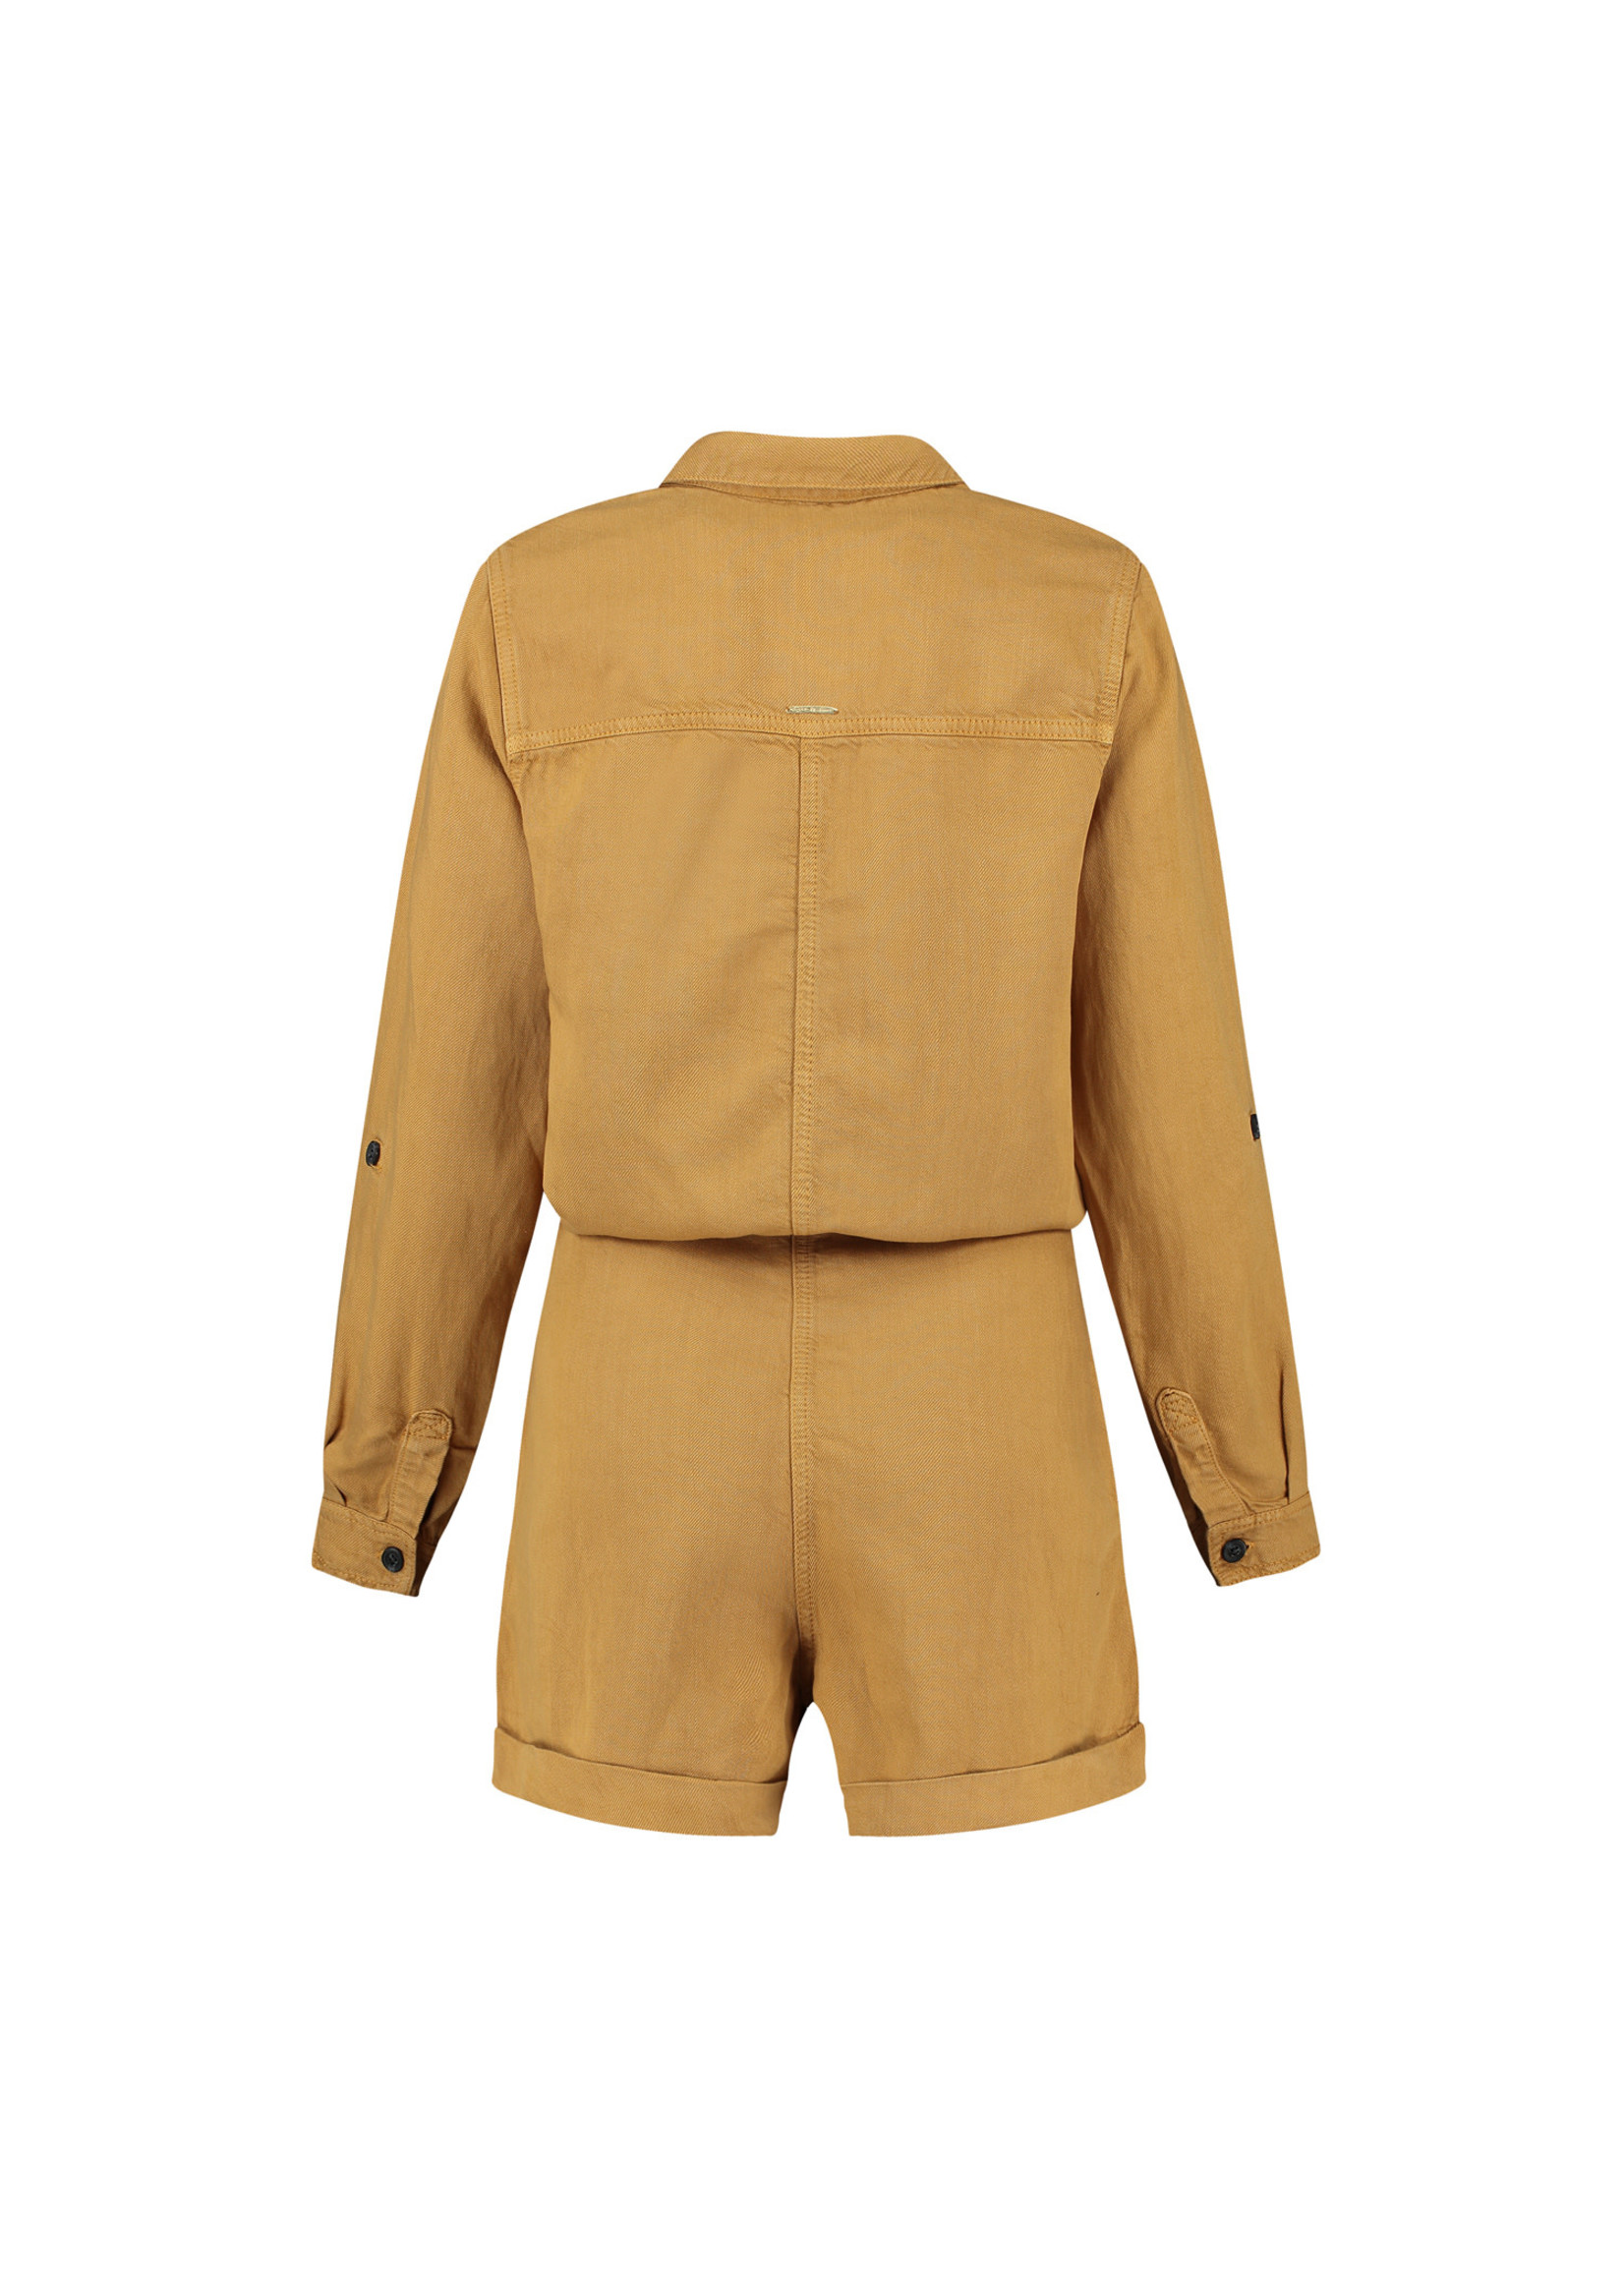 CIRCLE OF TRUST LIVY JUMPSUIT afternoon